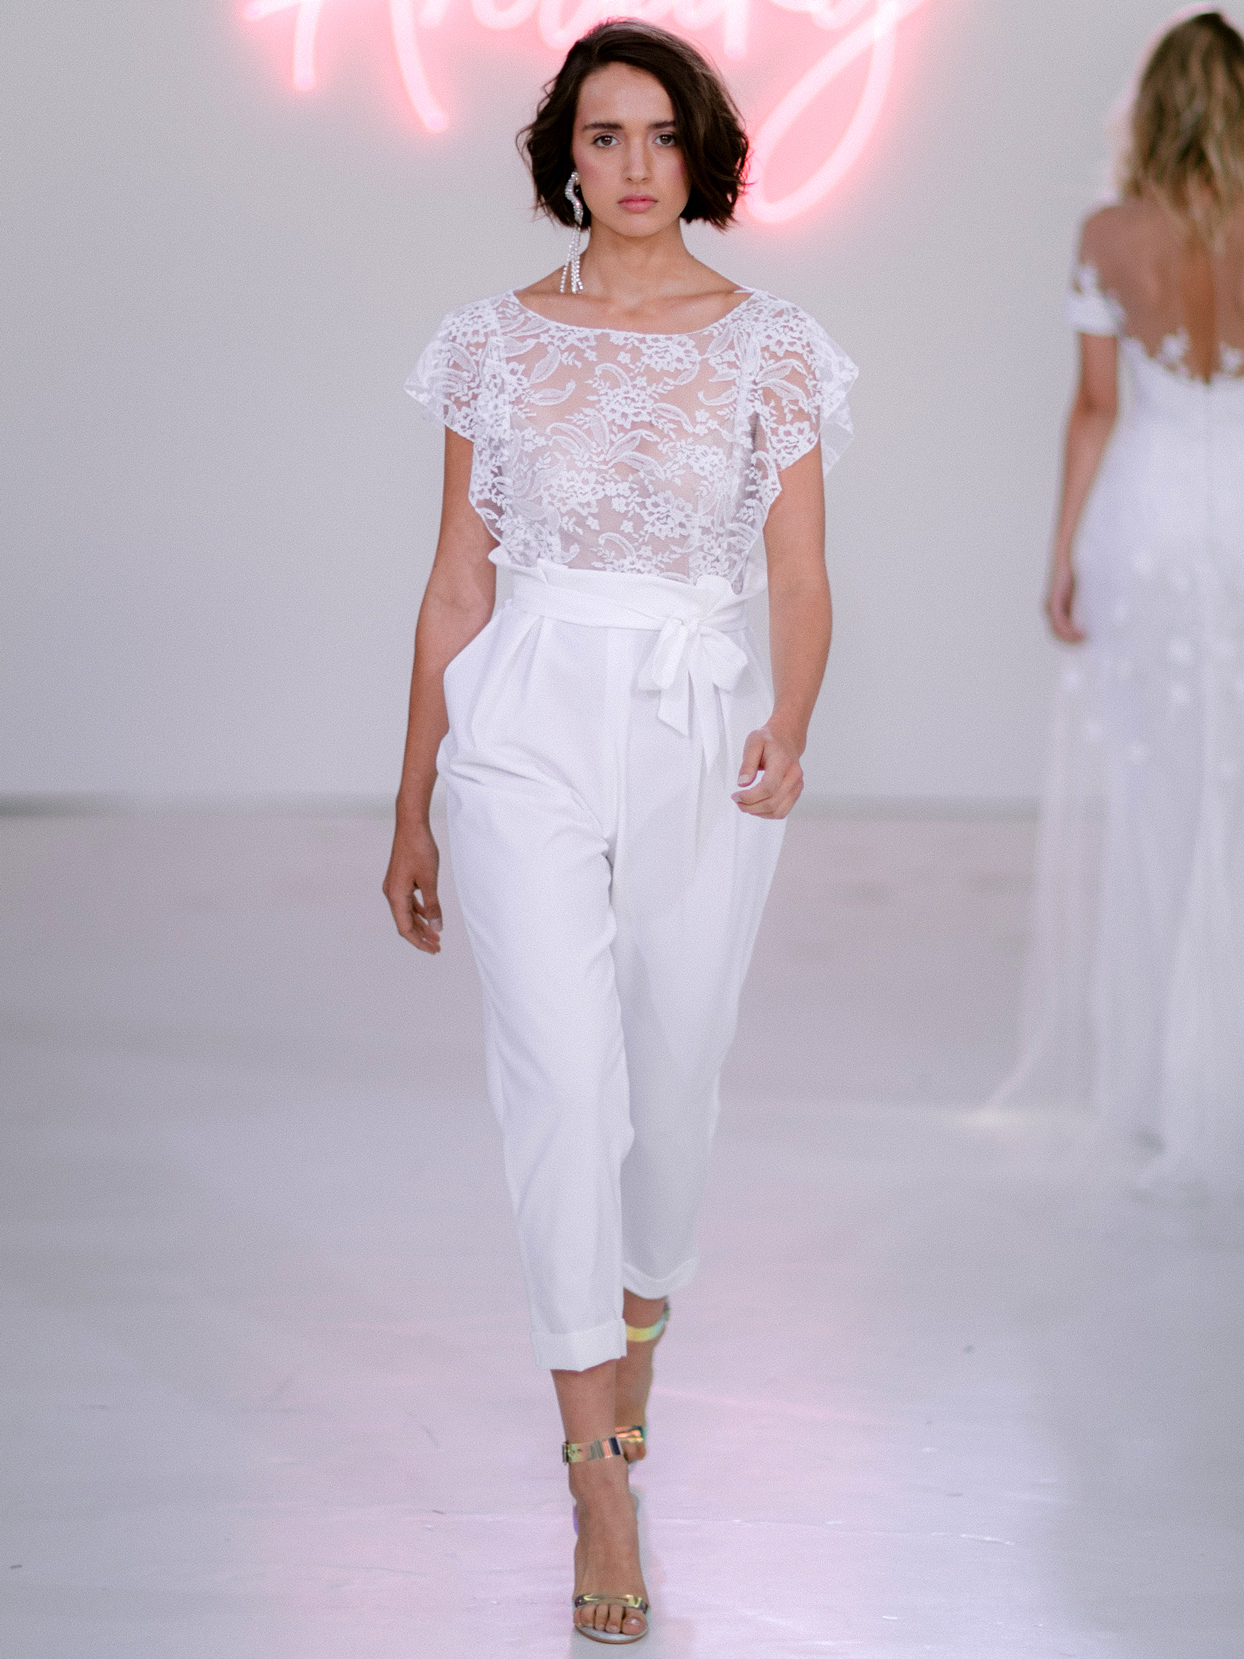 Rime Arodaky X The Mews Bridal sheer lace flutter sleeve bow belt jumpsuit wedding dress fall 2020